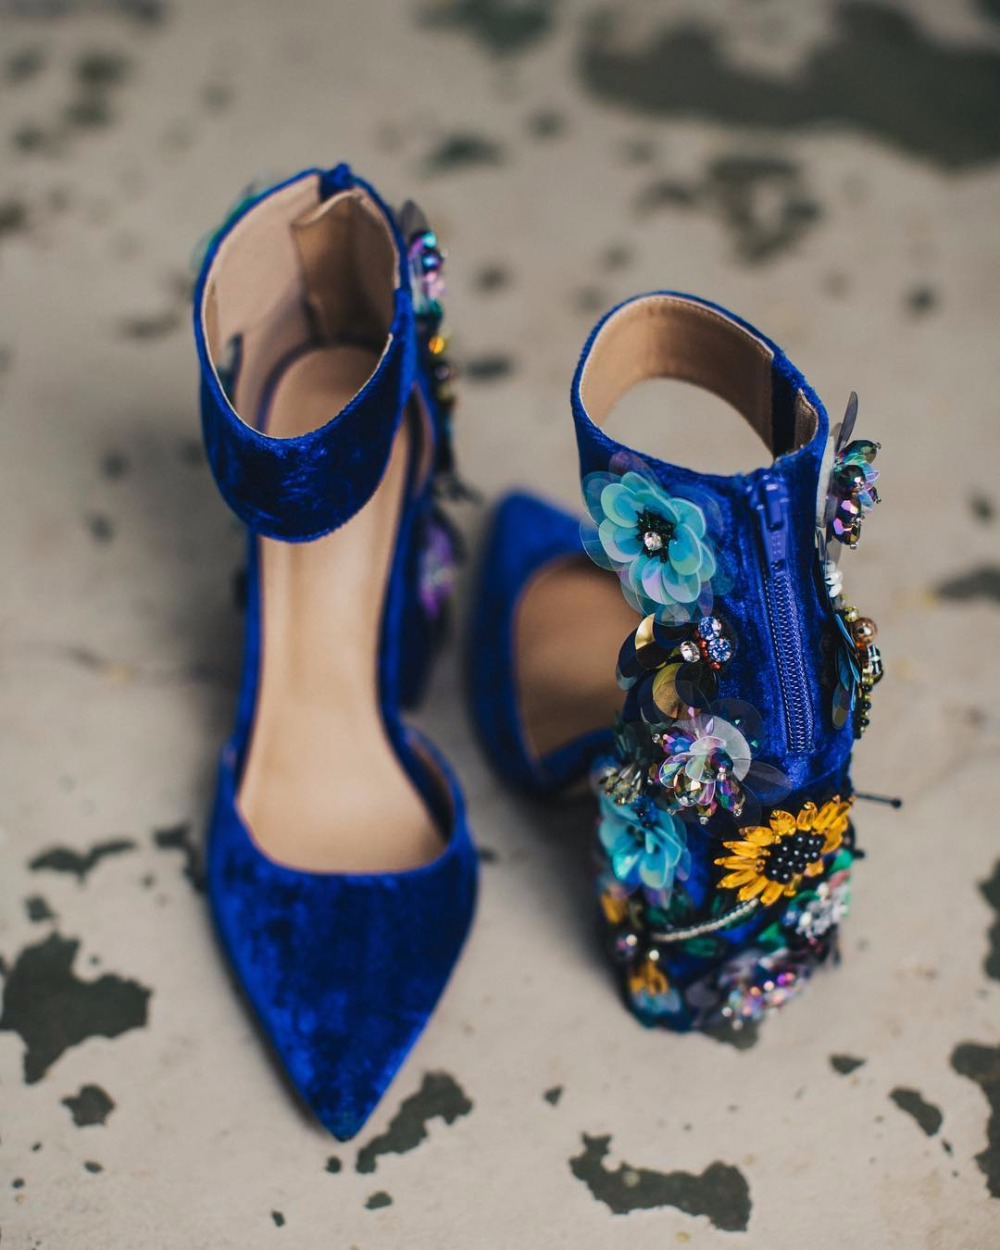 #TuesdayShoesday: 15 Pairs of the Most Baller Blue Shoes